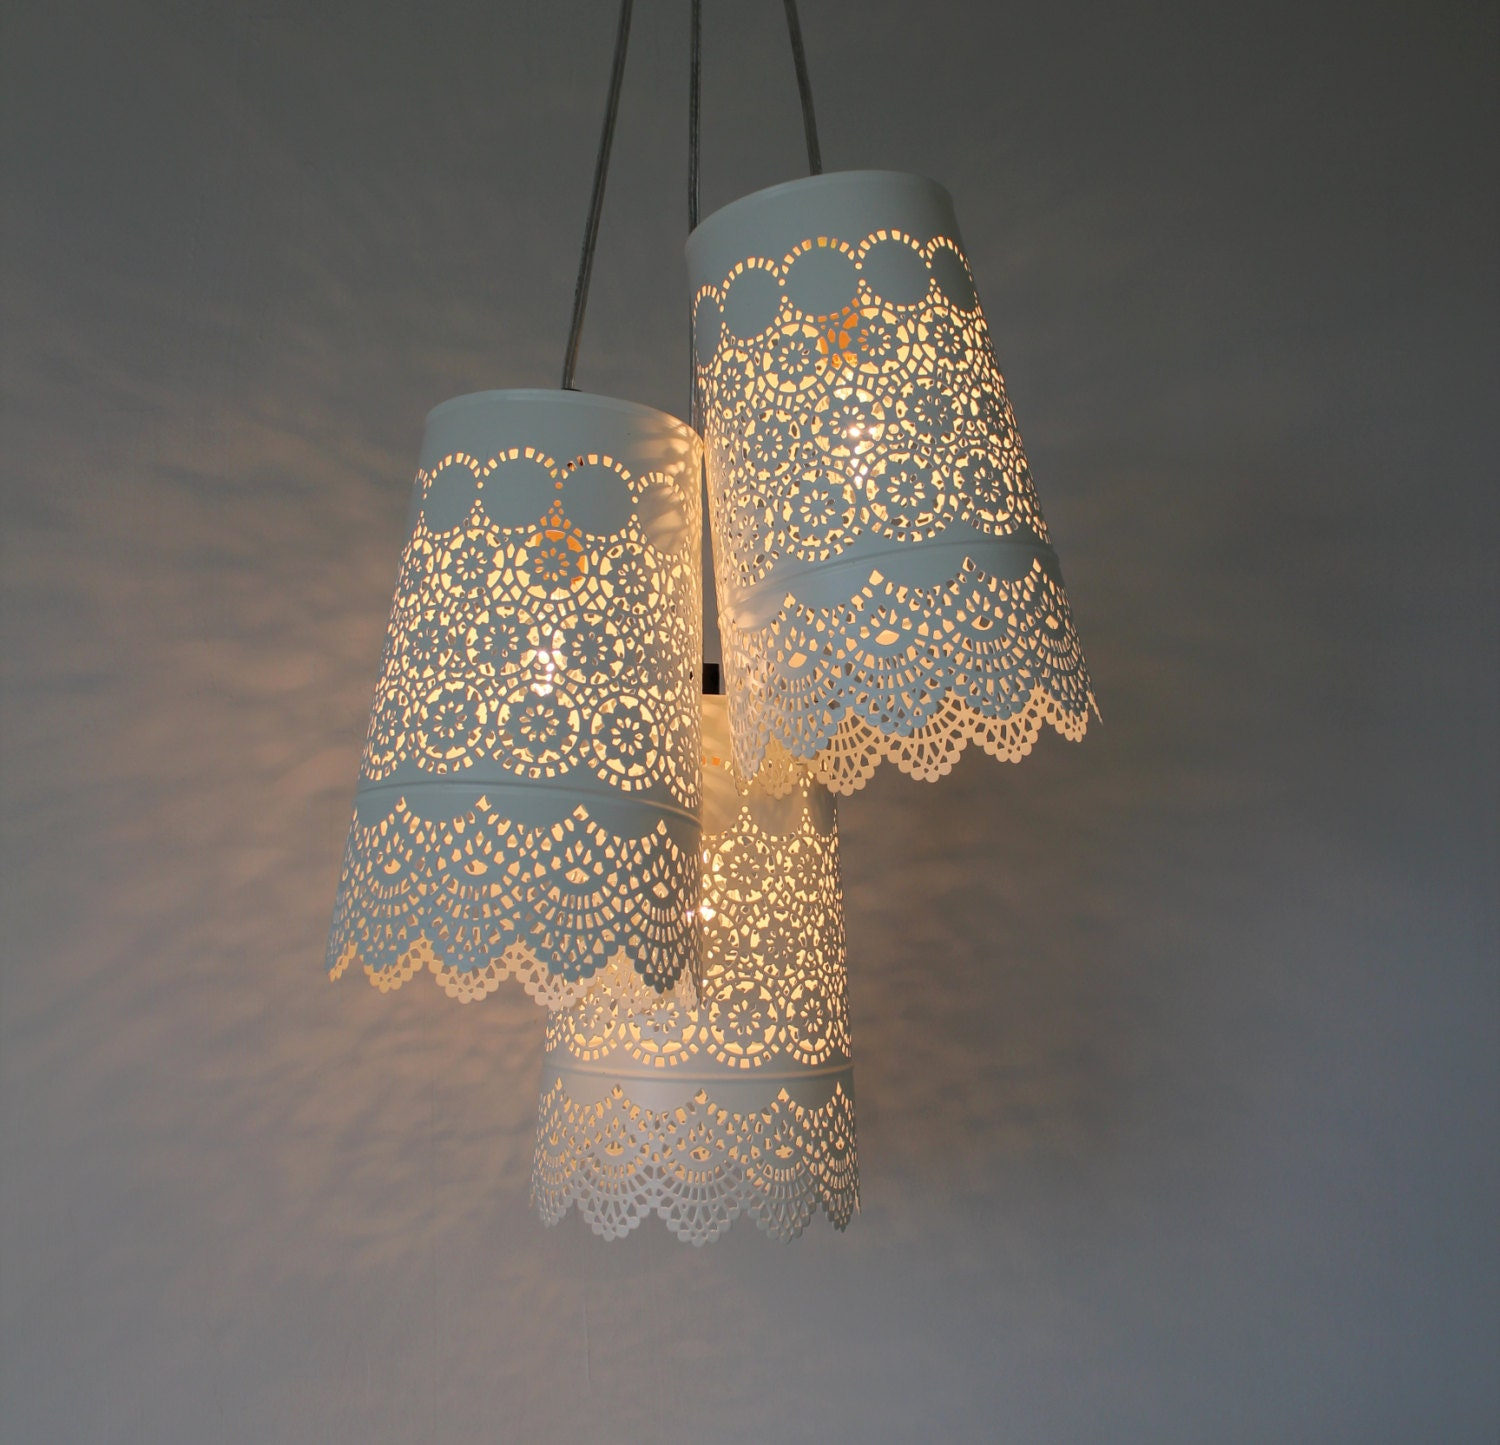 Handmade Light Fixtures baby's breath chandelier upcycled hanging pendant